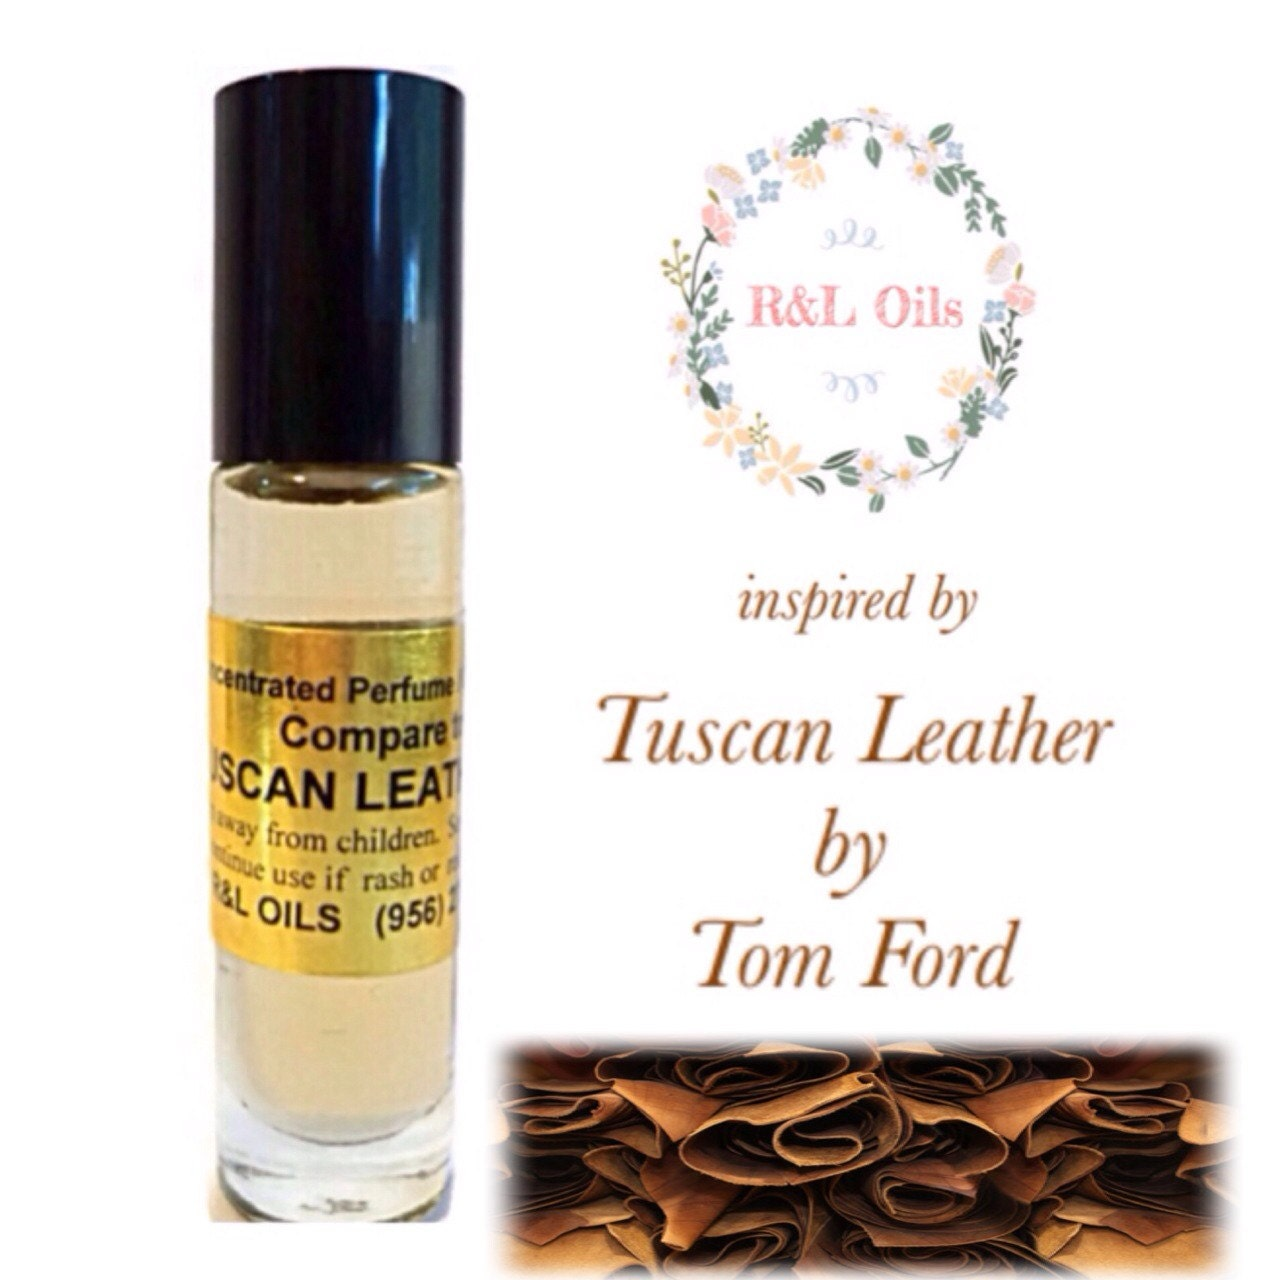 tom ford tuscan leather type cologne oil by rloils on etsy. Black Bedroom Furniture Sets. Home Design Ideas